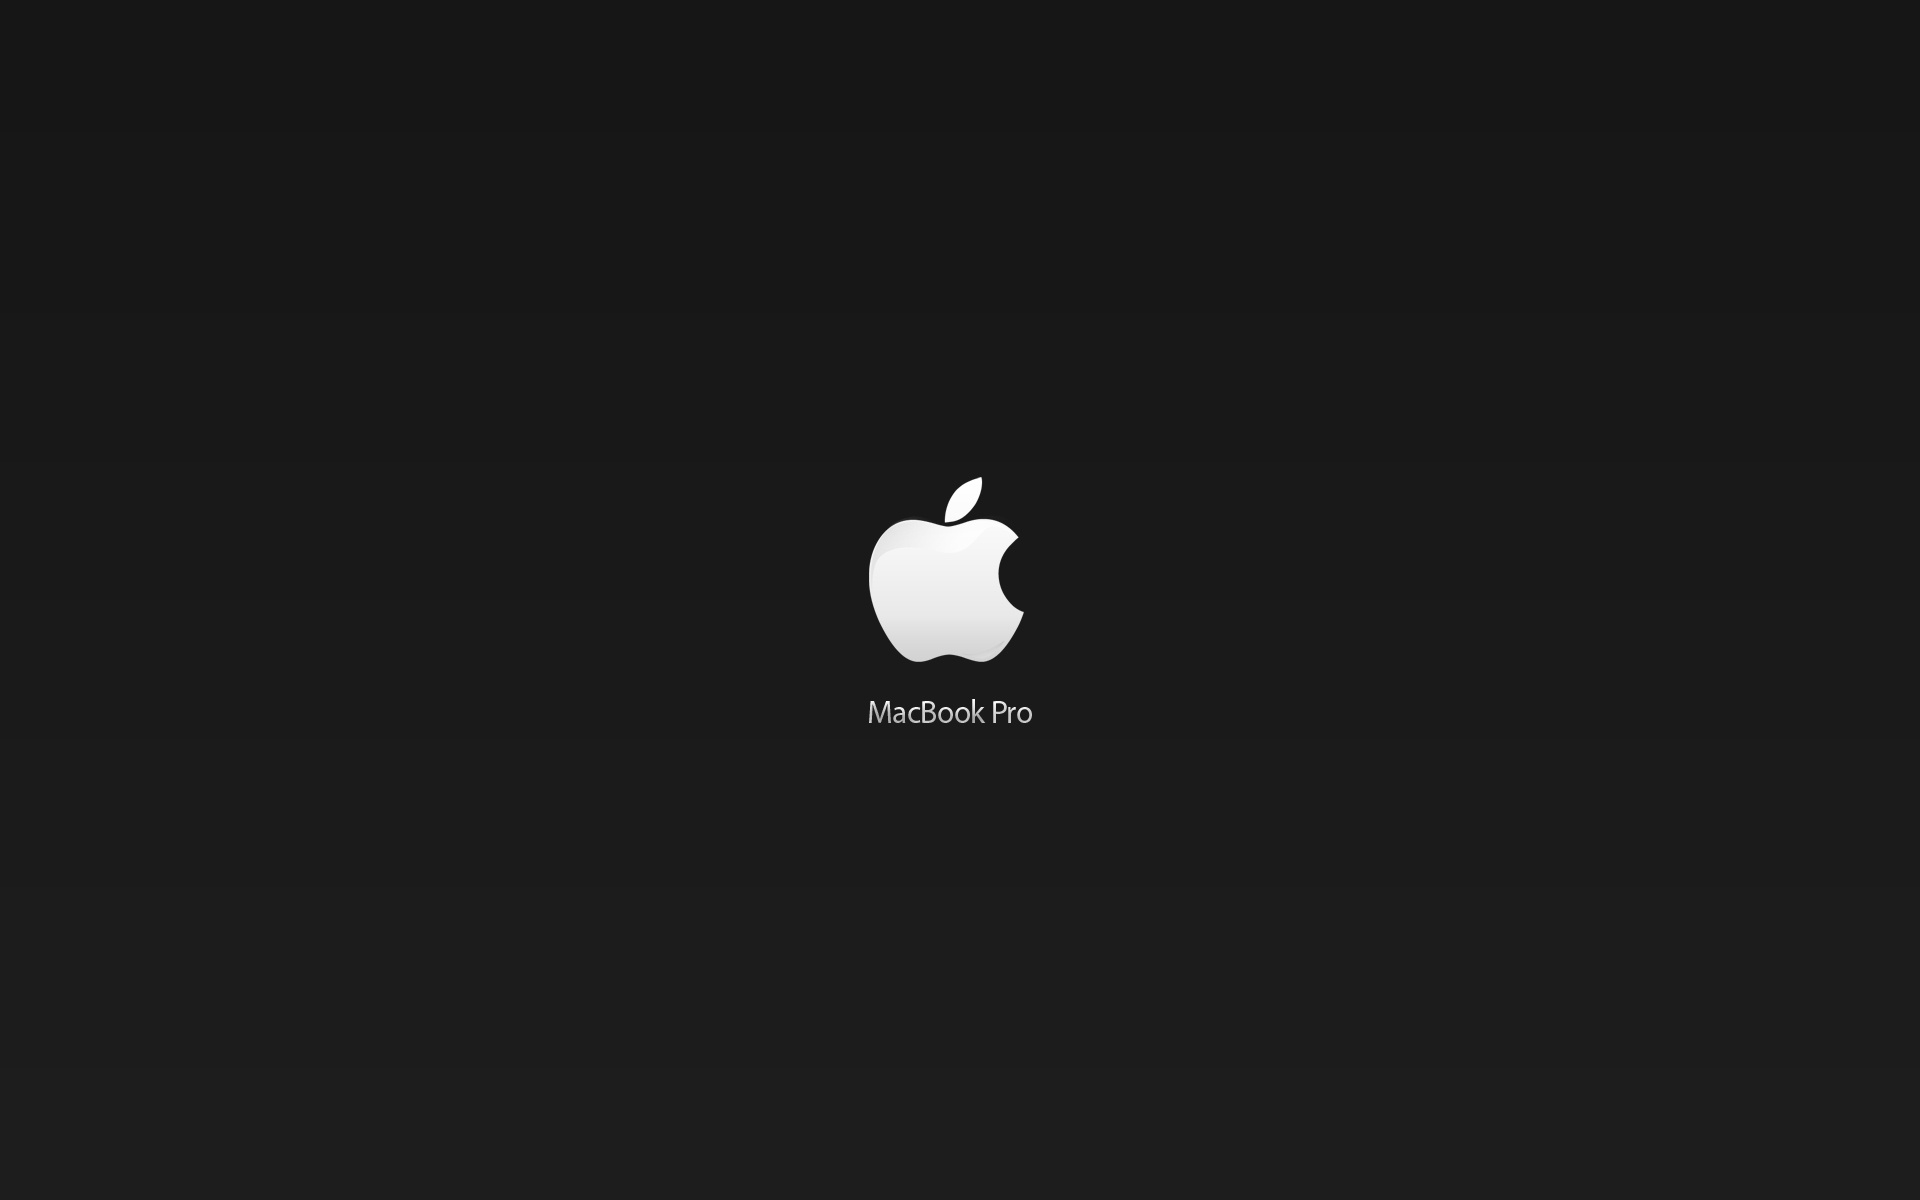 Live Macbook Pro Wallpapers, HCU93 Macbook Pro Backgrounds